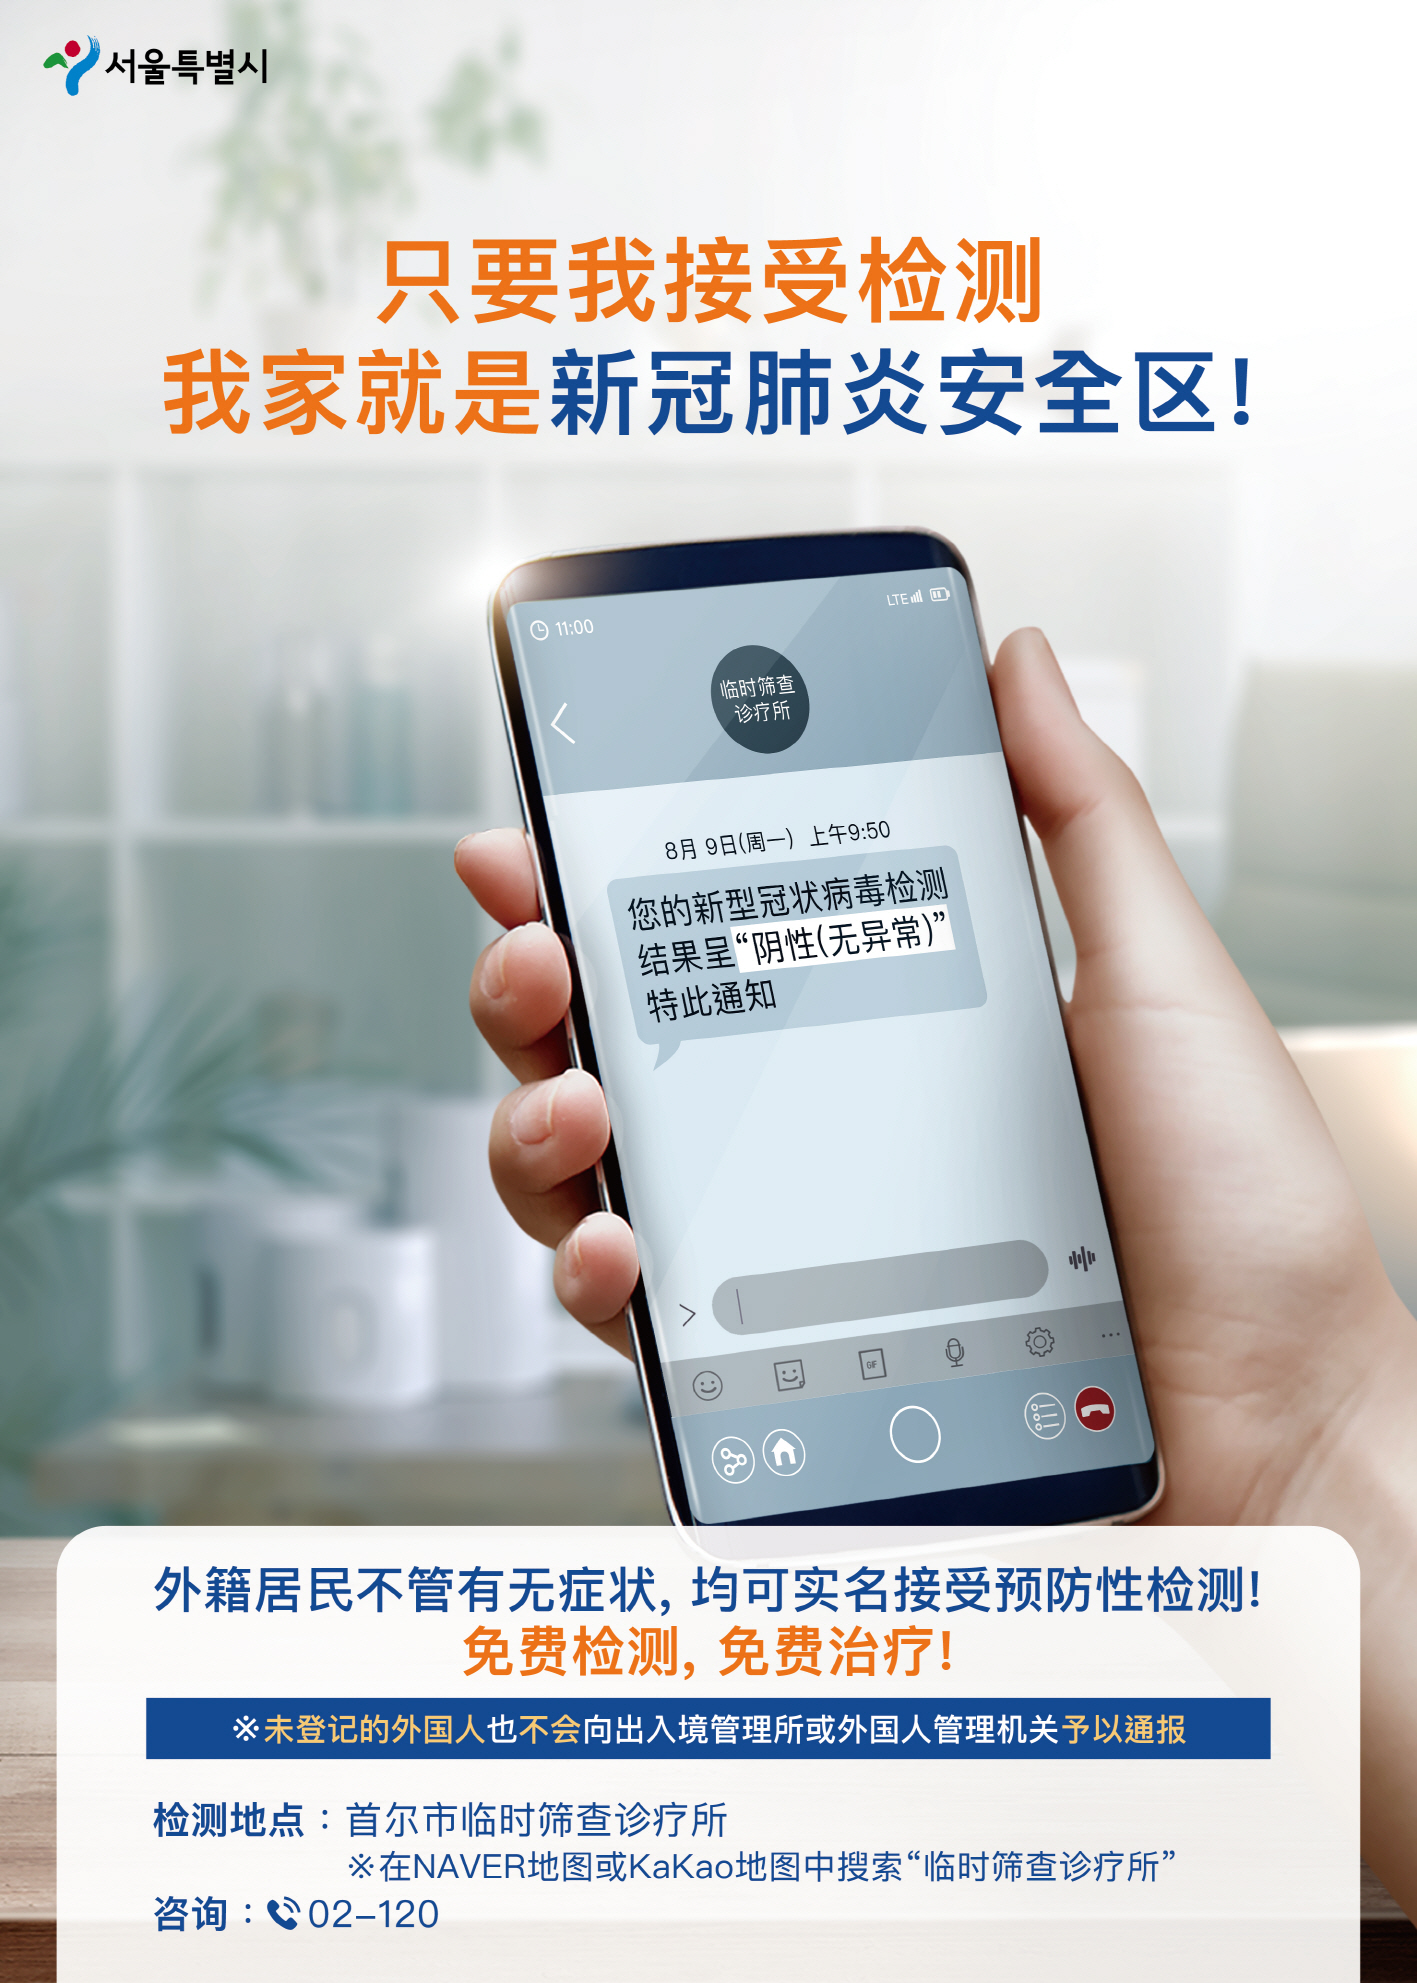 Preemptive Covid-19 tests for foreign residents chinese poster